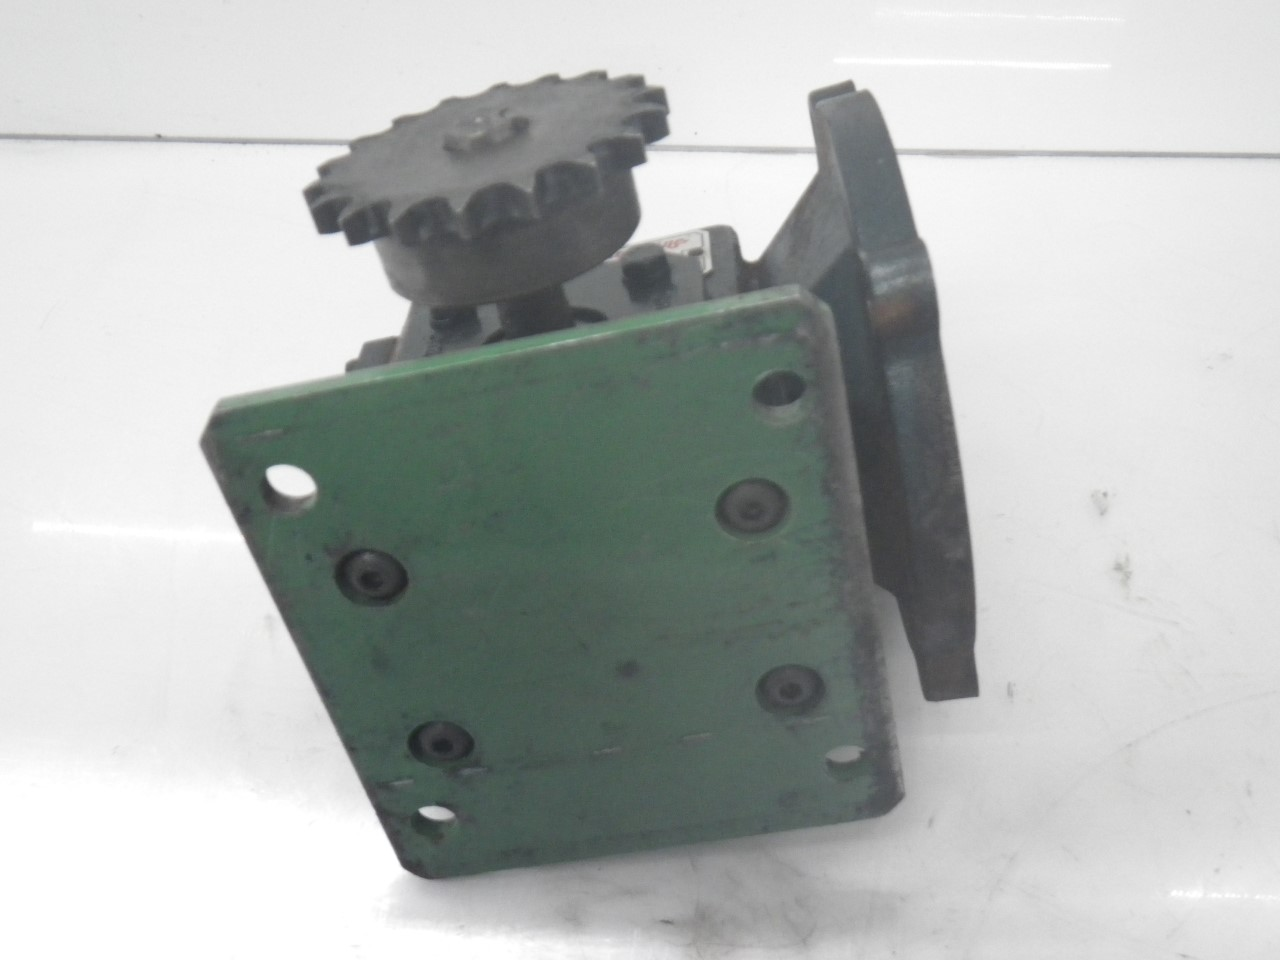 IMGP6972M01133-2 Flexaline GearBox 0.260 inhp, ratio140 motor frame56c (Used Tested) (10)